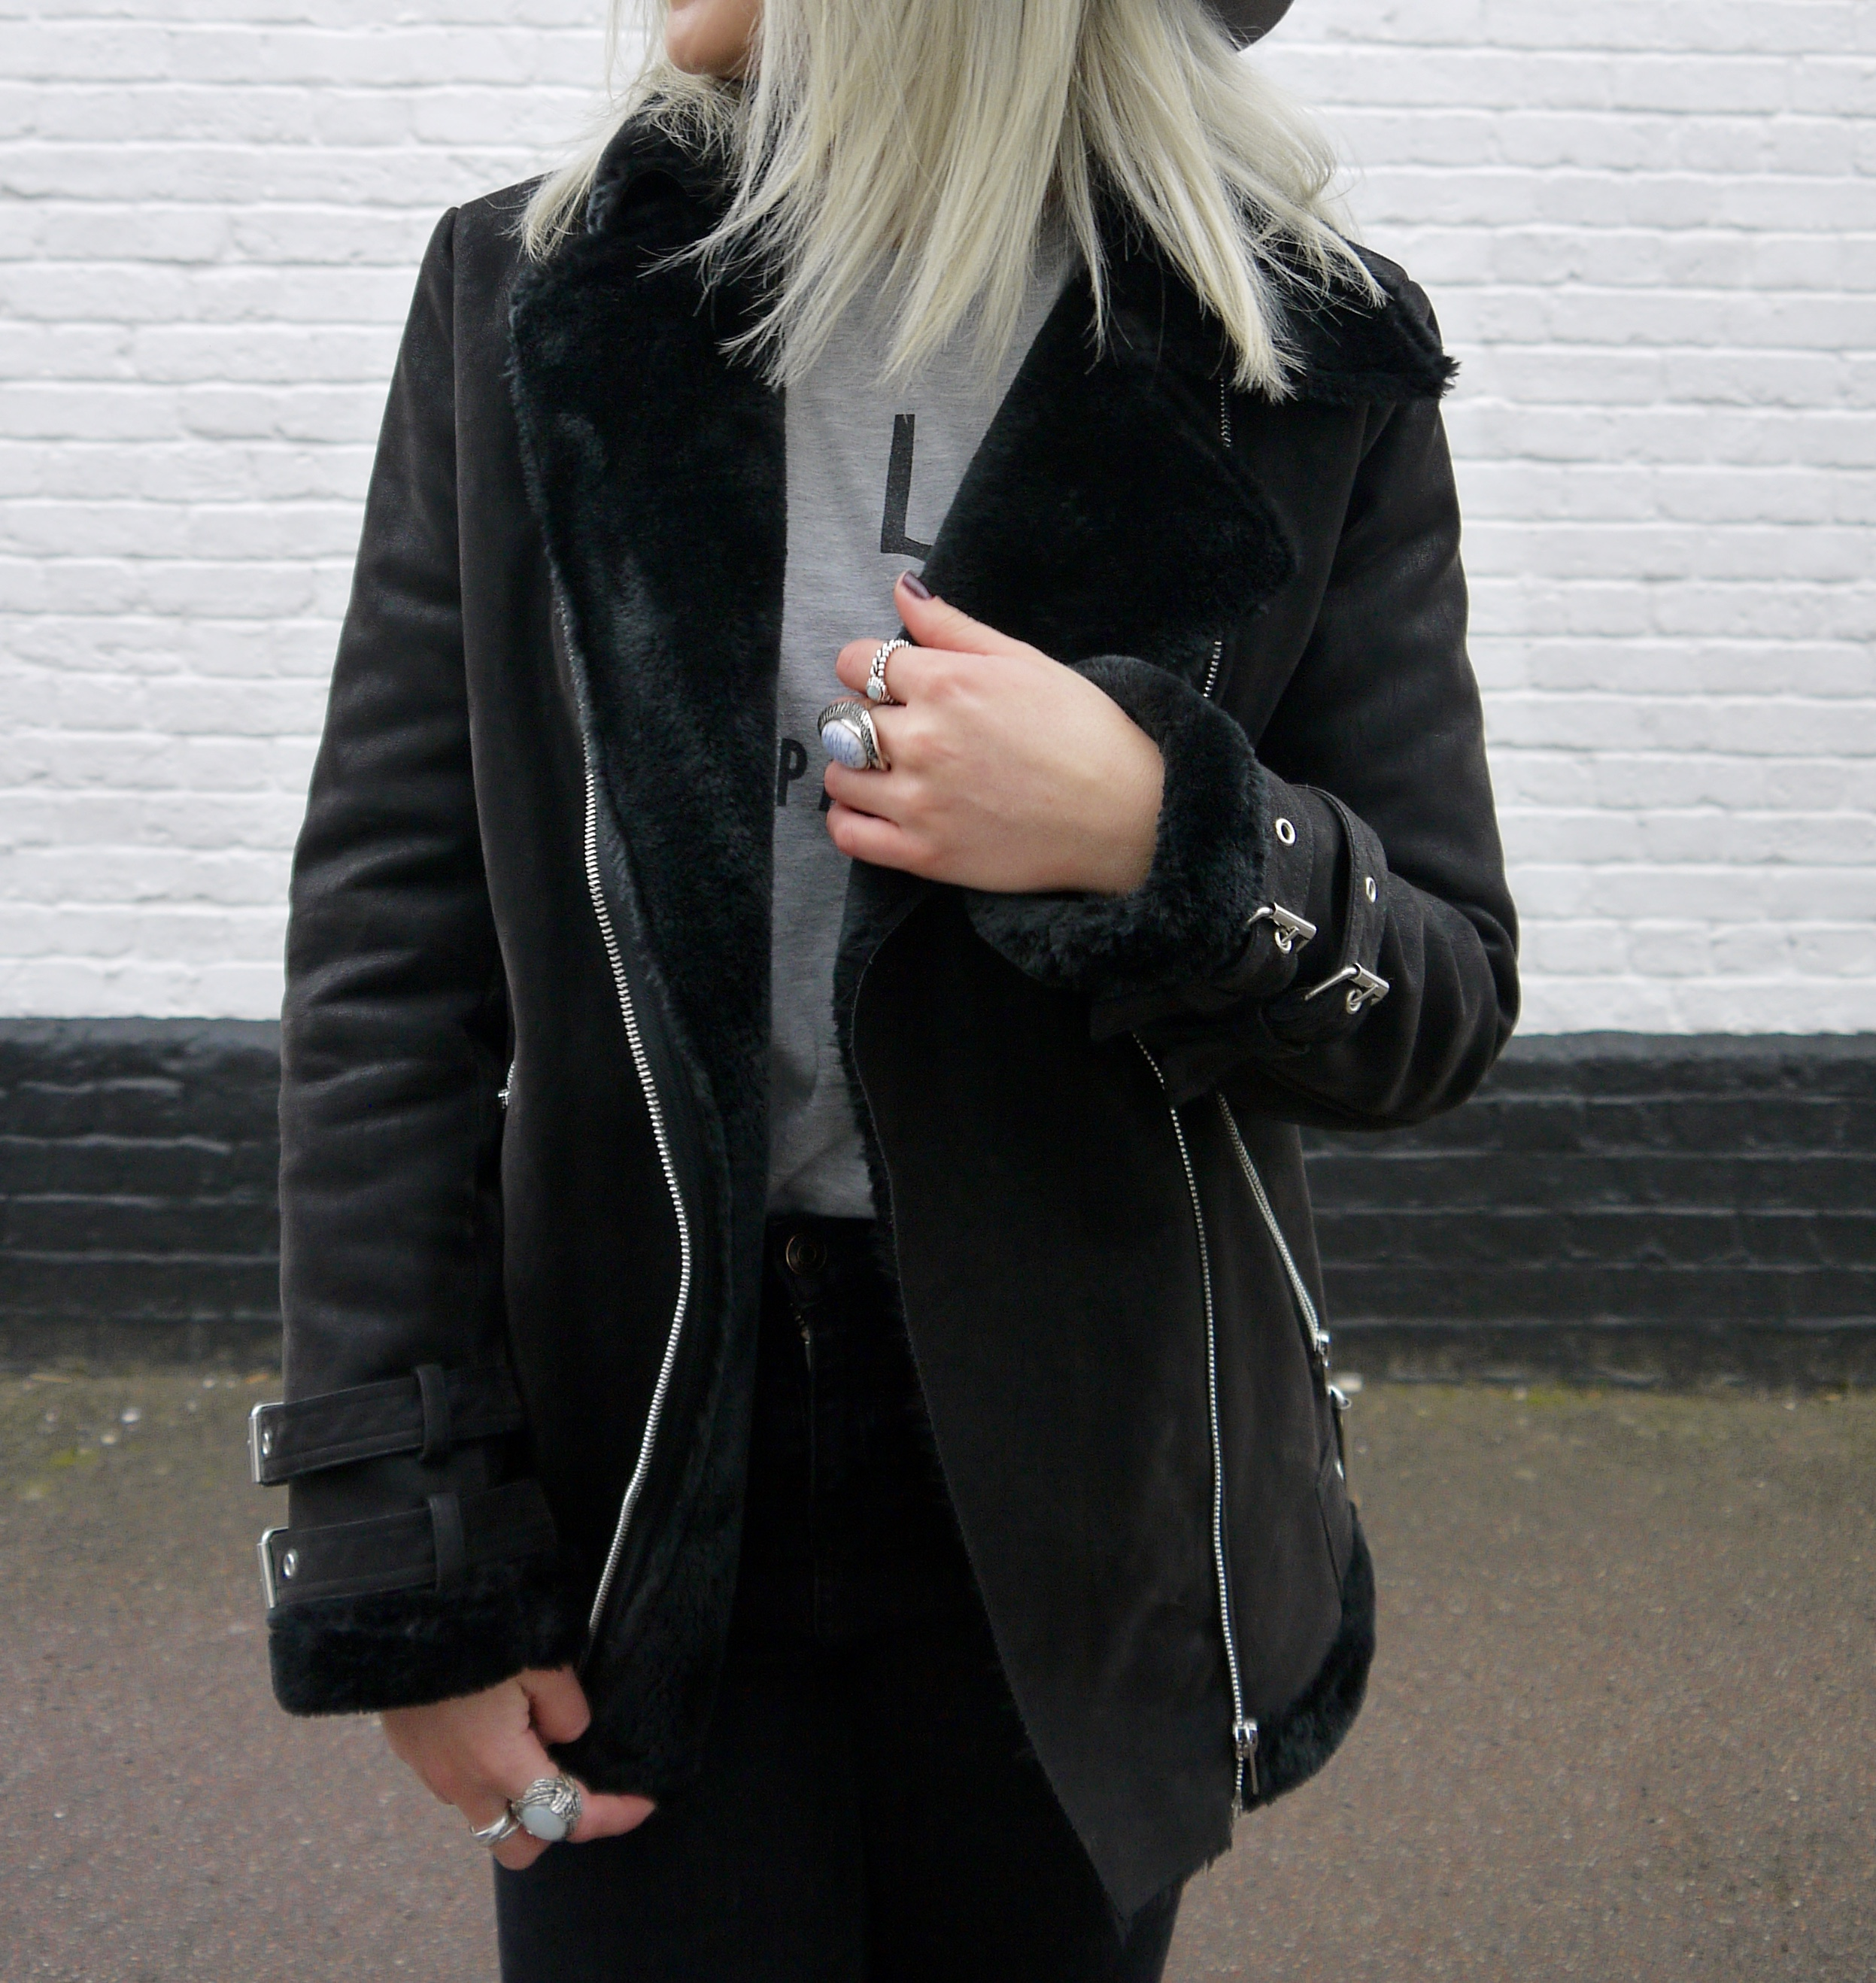 MISGUIDED BLACK PILOT COAT, PILOT COAT, BLACK COAT, ASH BLONDE HAIR, GREY HAIR, GREY FEDORA, LAURA BYRNES, LAURAS LITTLE LOCKET